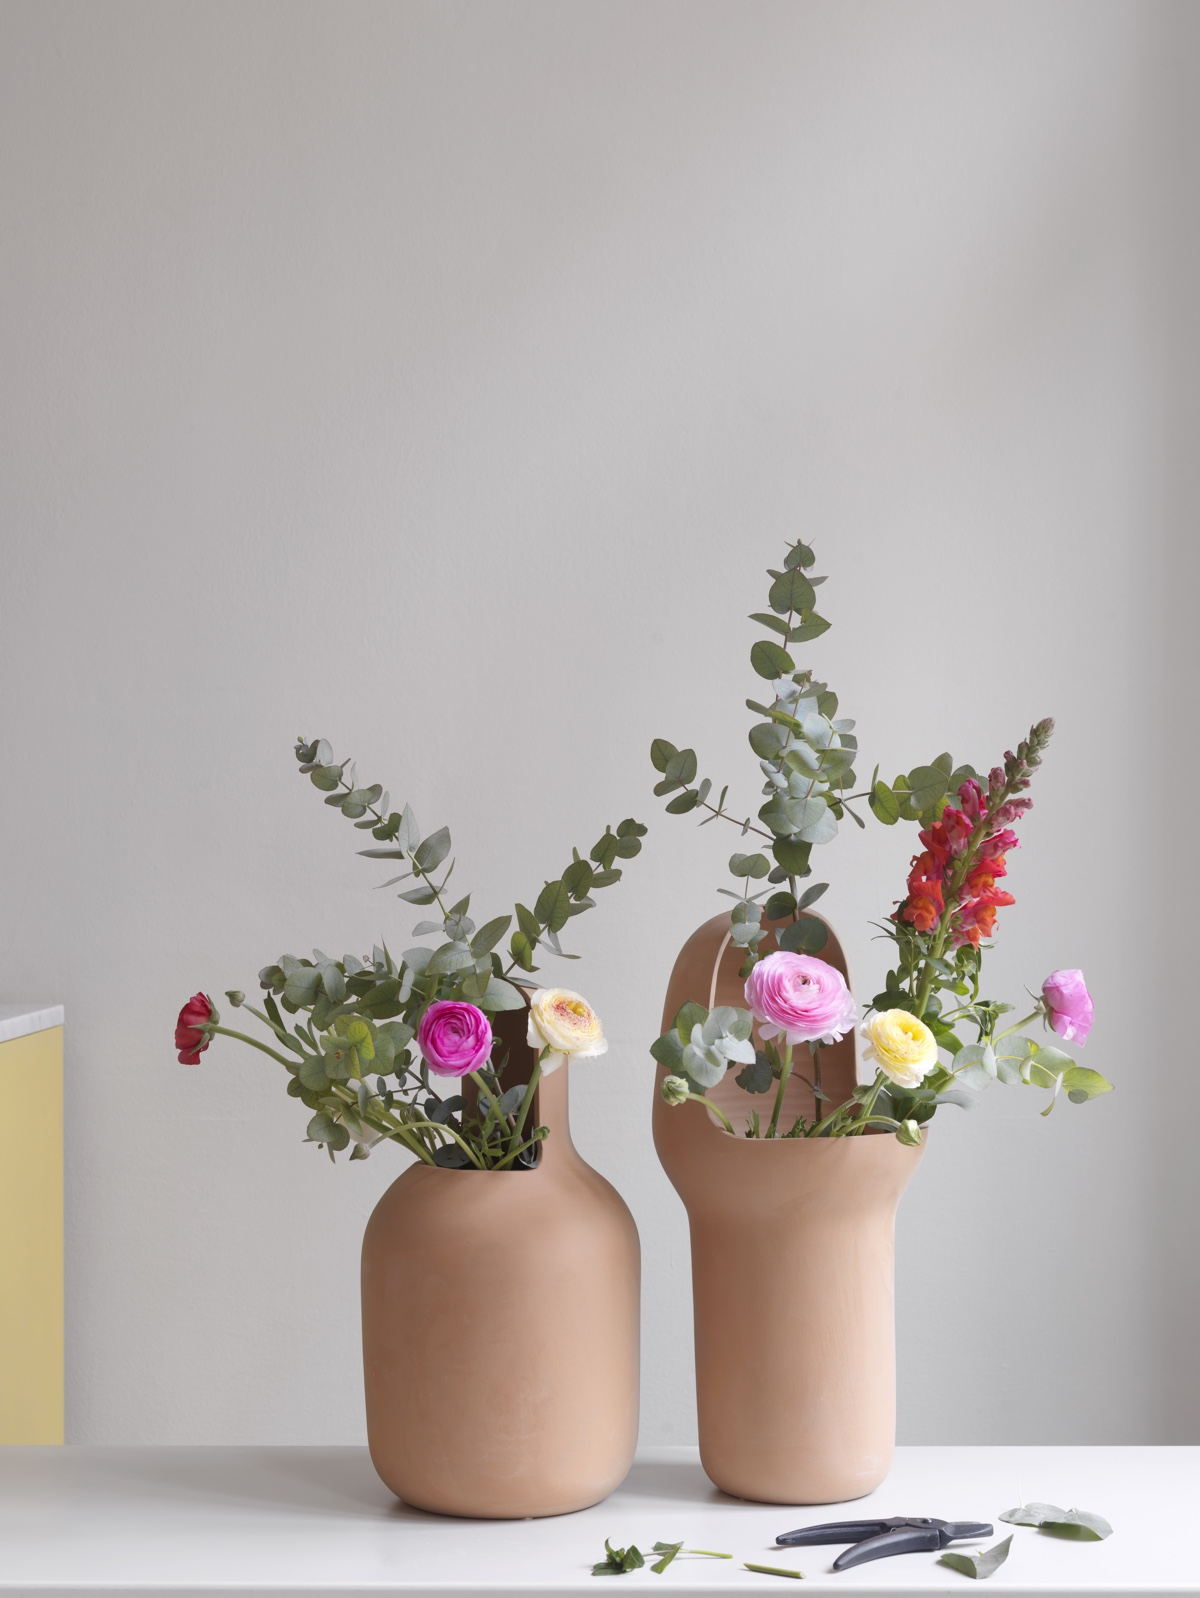 Gardenias garden vase collection. Designed by Jaime Hayon for BD Barcelona Design.